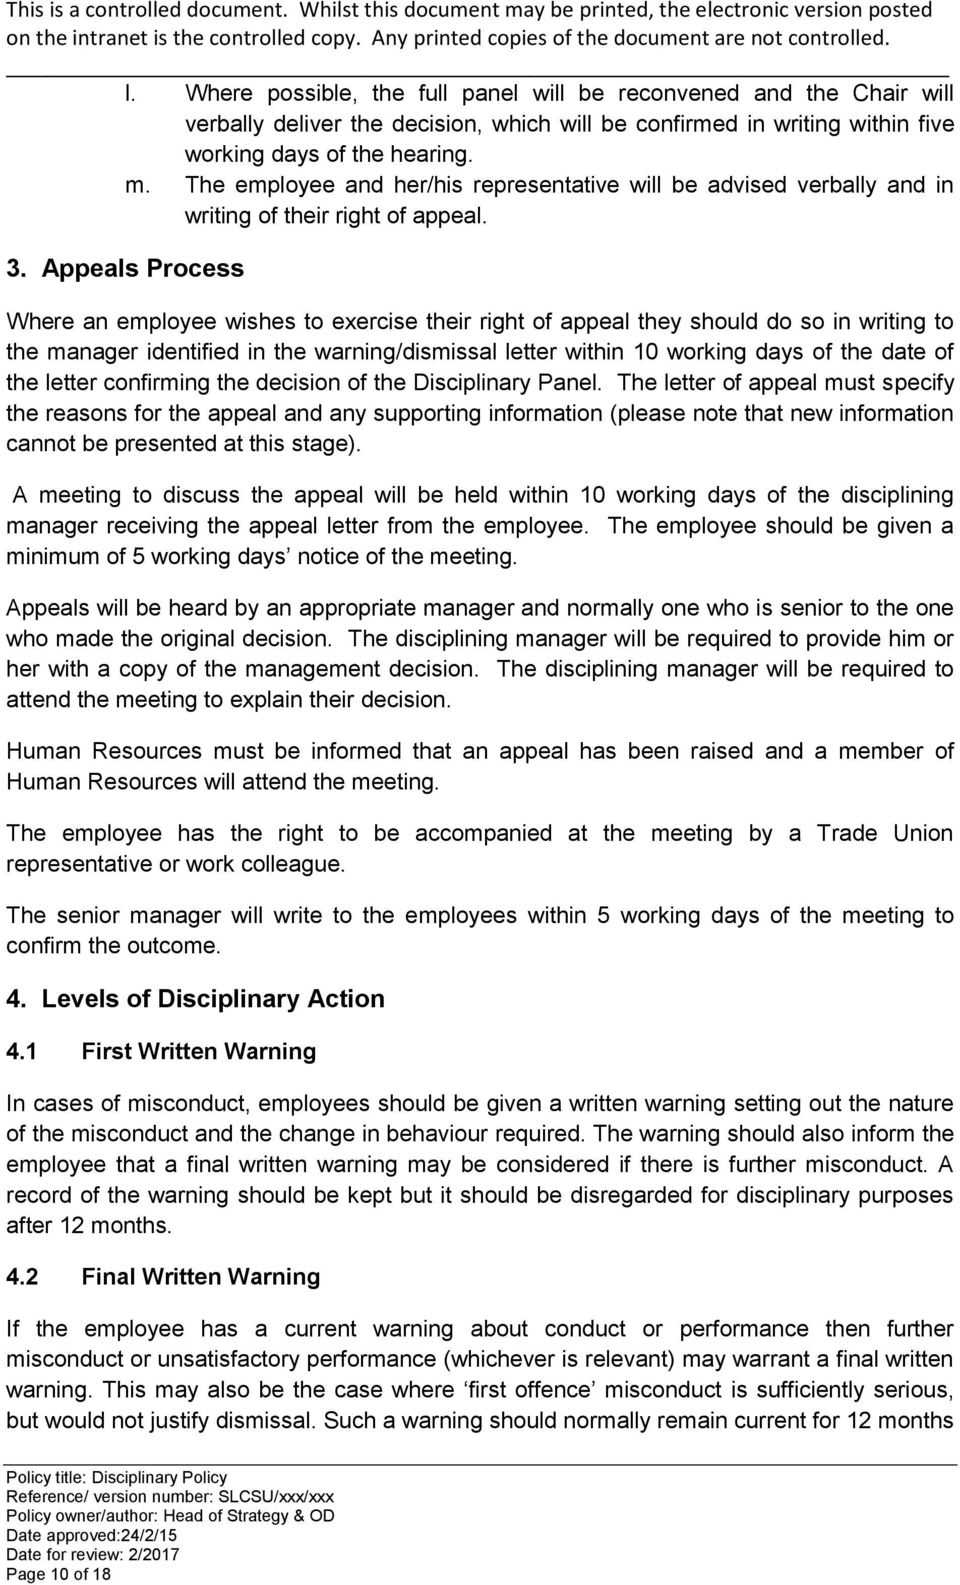 Appeals Process Where an employee wishes to exercise their right of appeal they should do so in writing to the manager identified in the warning/dismissal letter within 10 working days of the date of